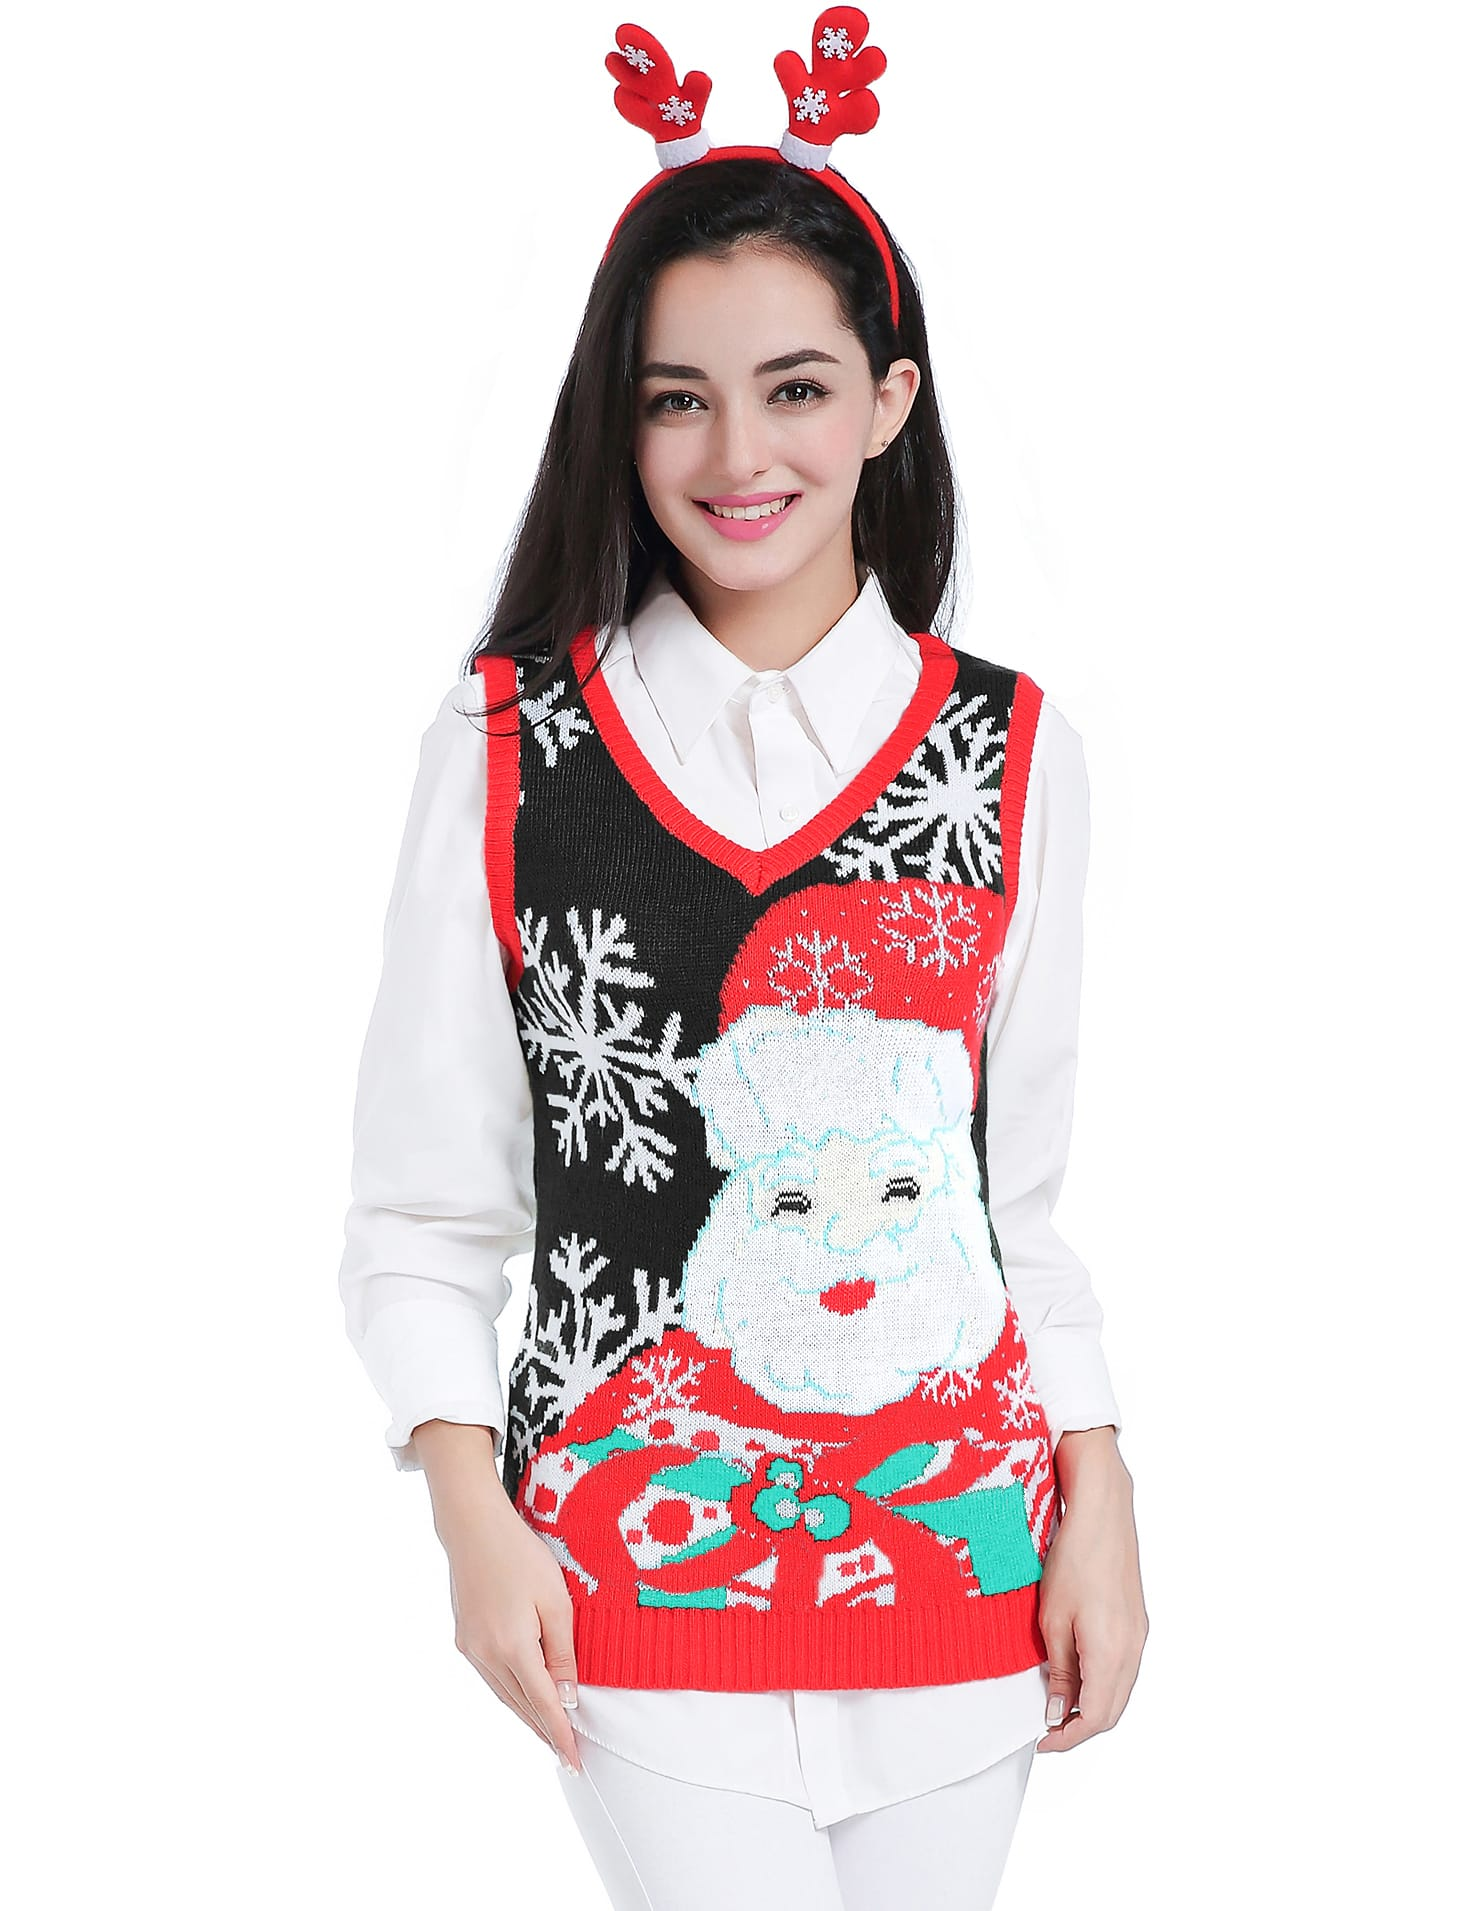 Woman's Ugly Christmas Sweater Vest $9.80